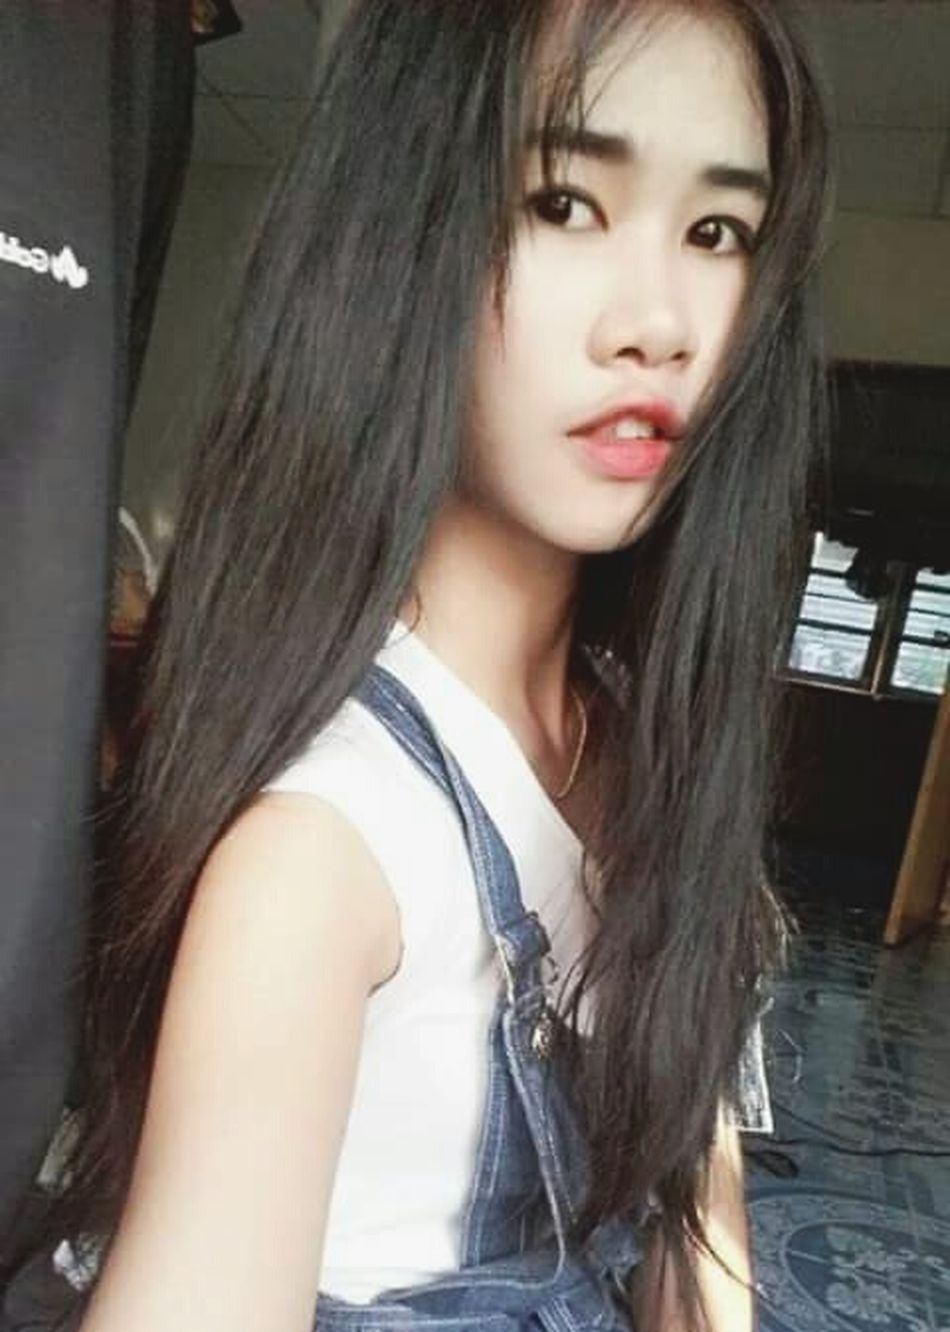 That's Me Self Portrait Hello World Asian Girl Girl Lips Hairstyle Selfie✌ Fasion Hair Faces Of EyeEm Black Hair Thai Girls Relaxing Long Hair Enjoying Life Sexylips